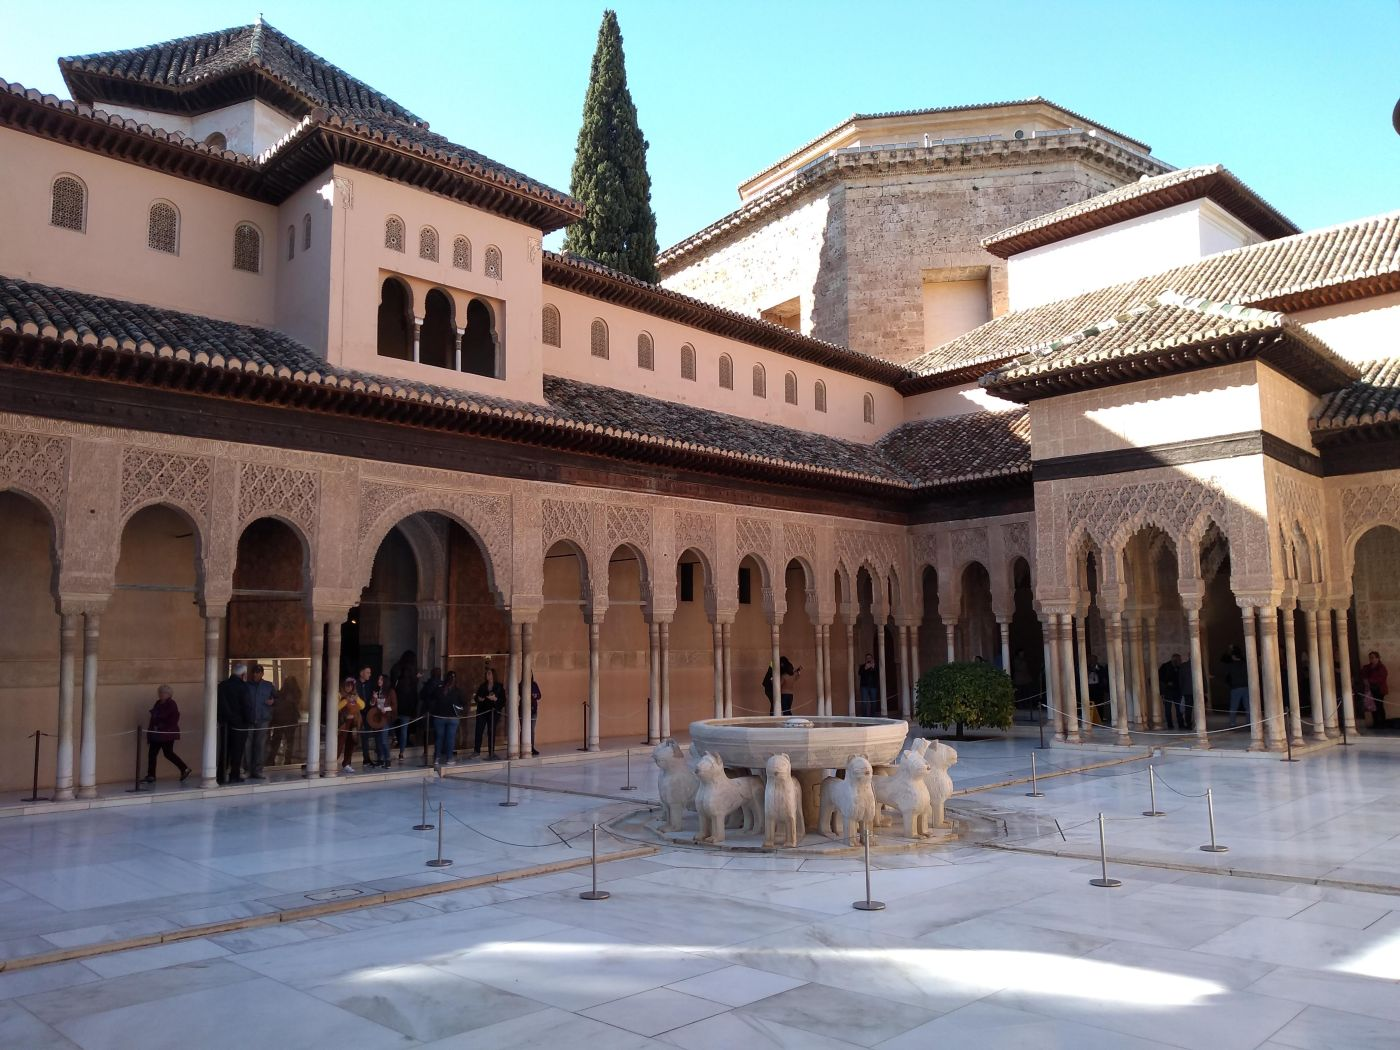 Courtyard scene typical of the Nasrid Palaces